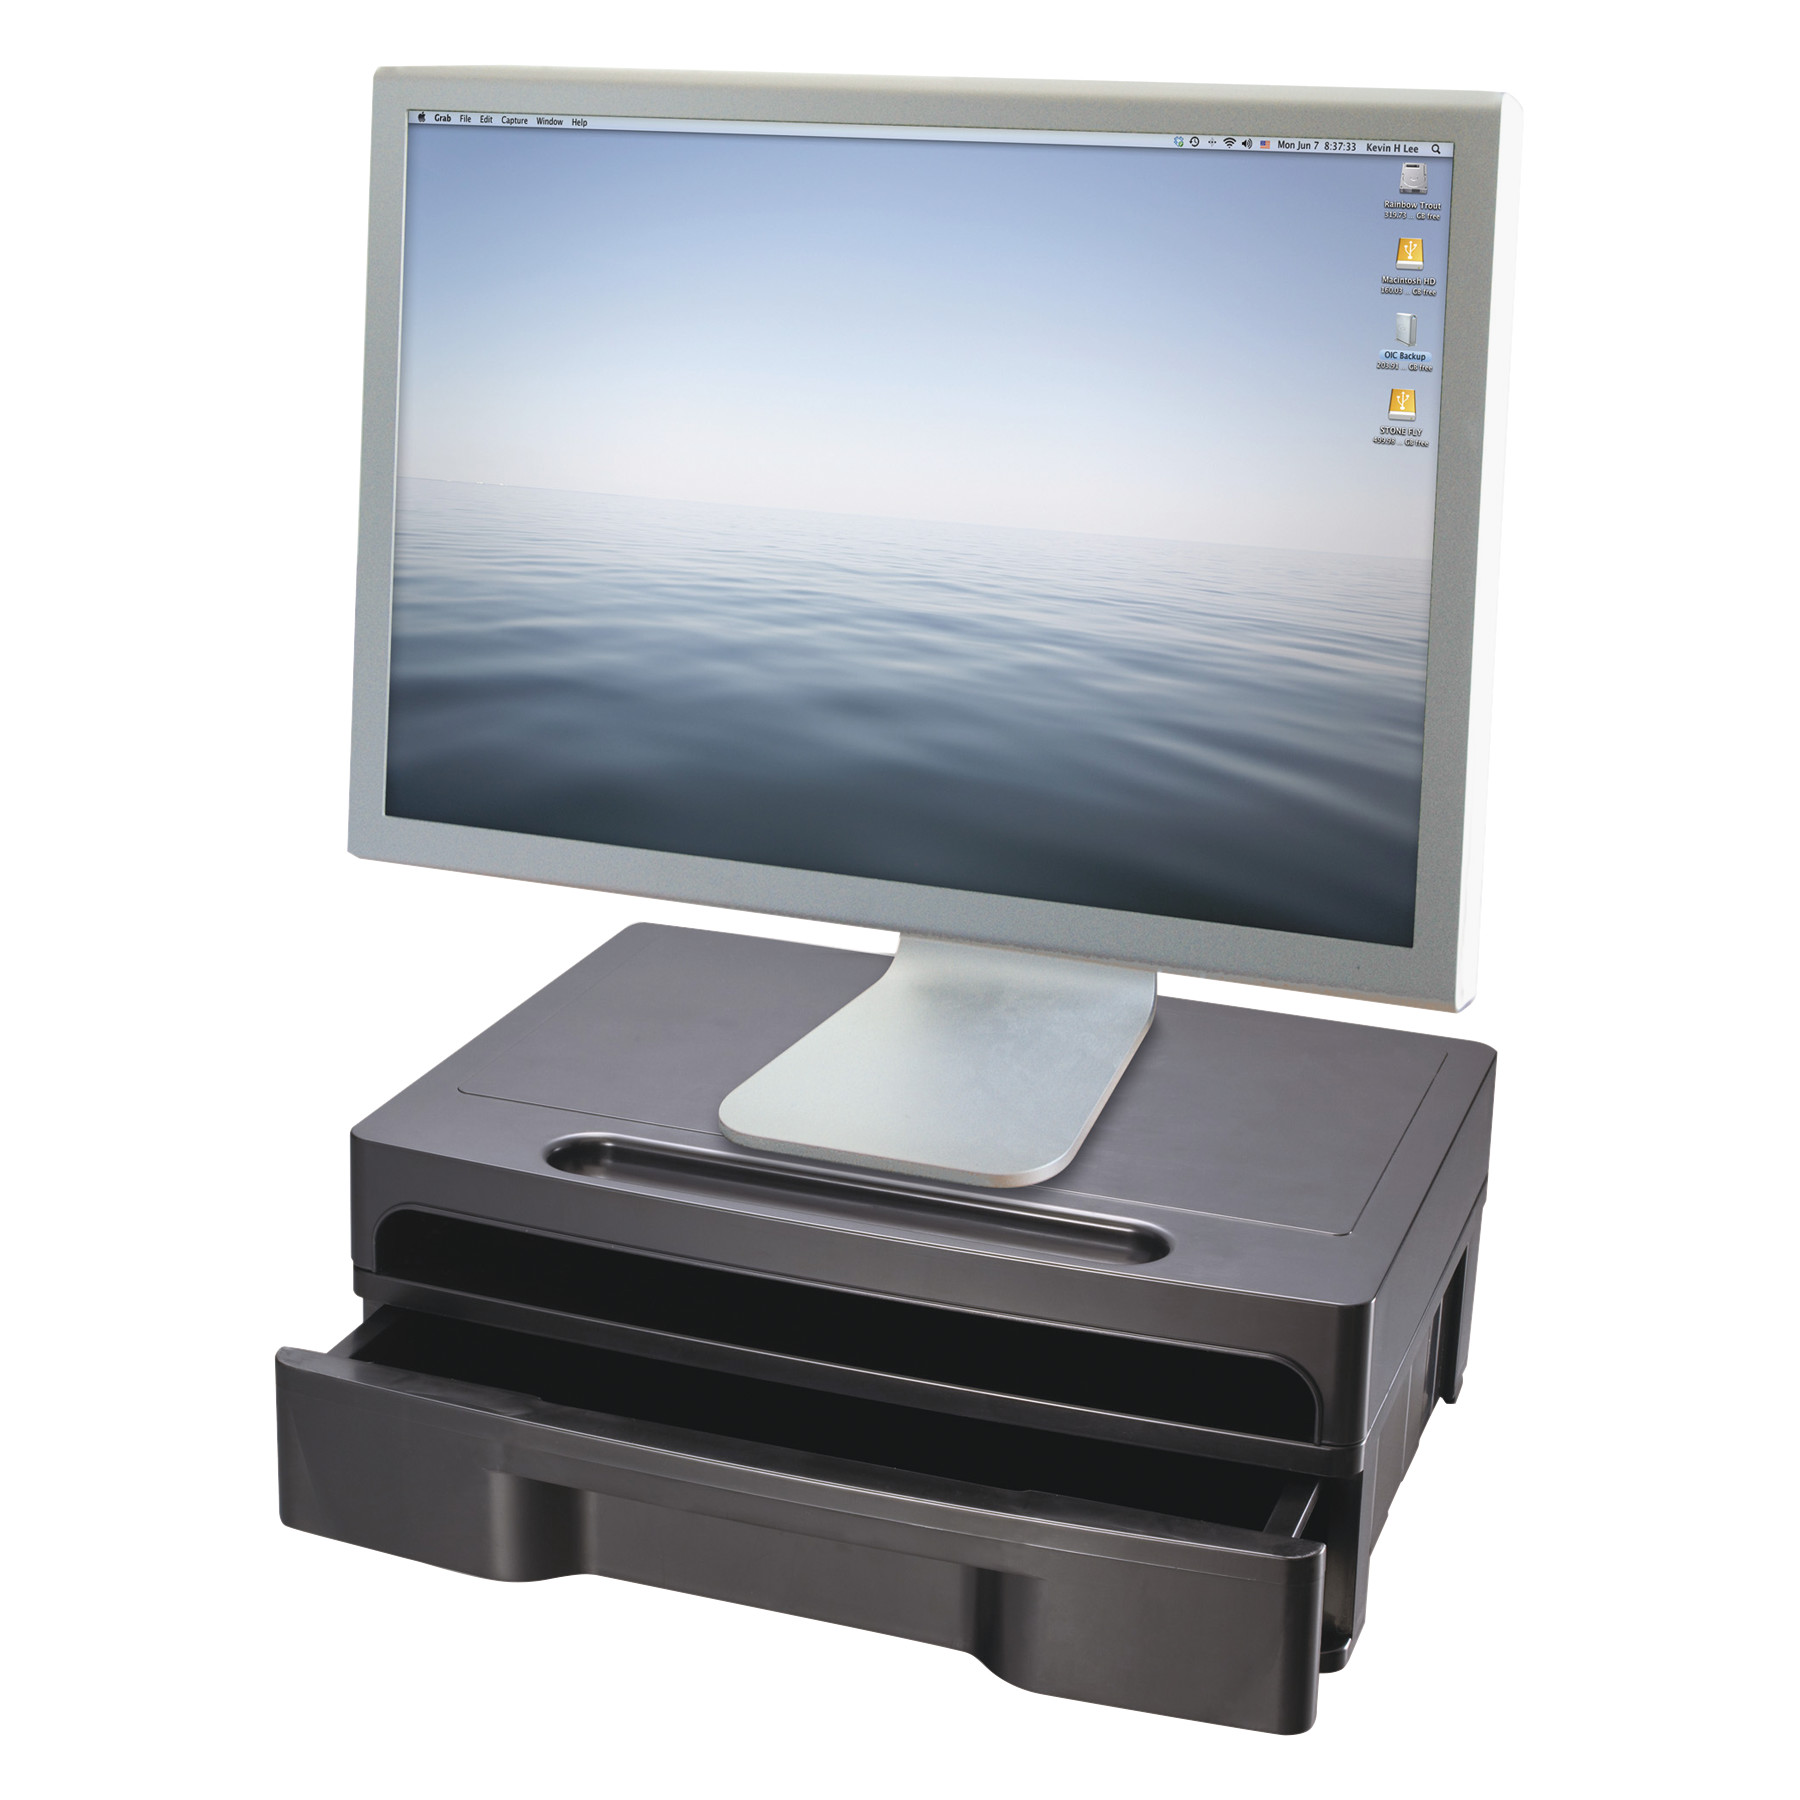 Officemate Monitor Stand with Drawer, 13 1/8 x 9 7/8 x 5, Black